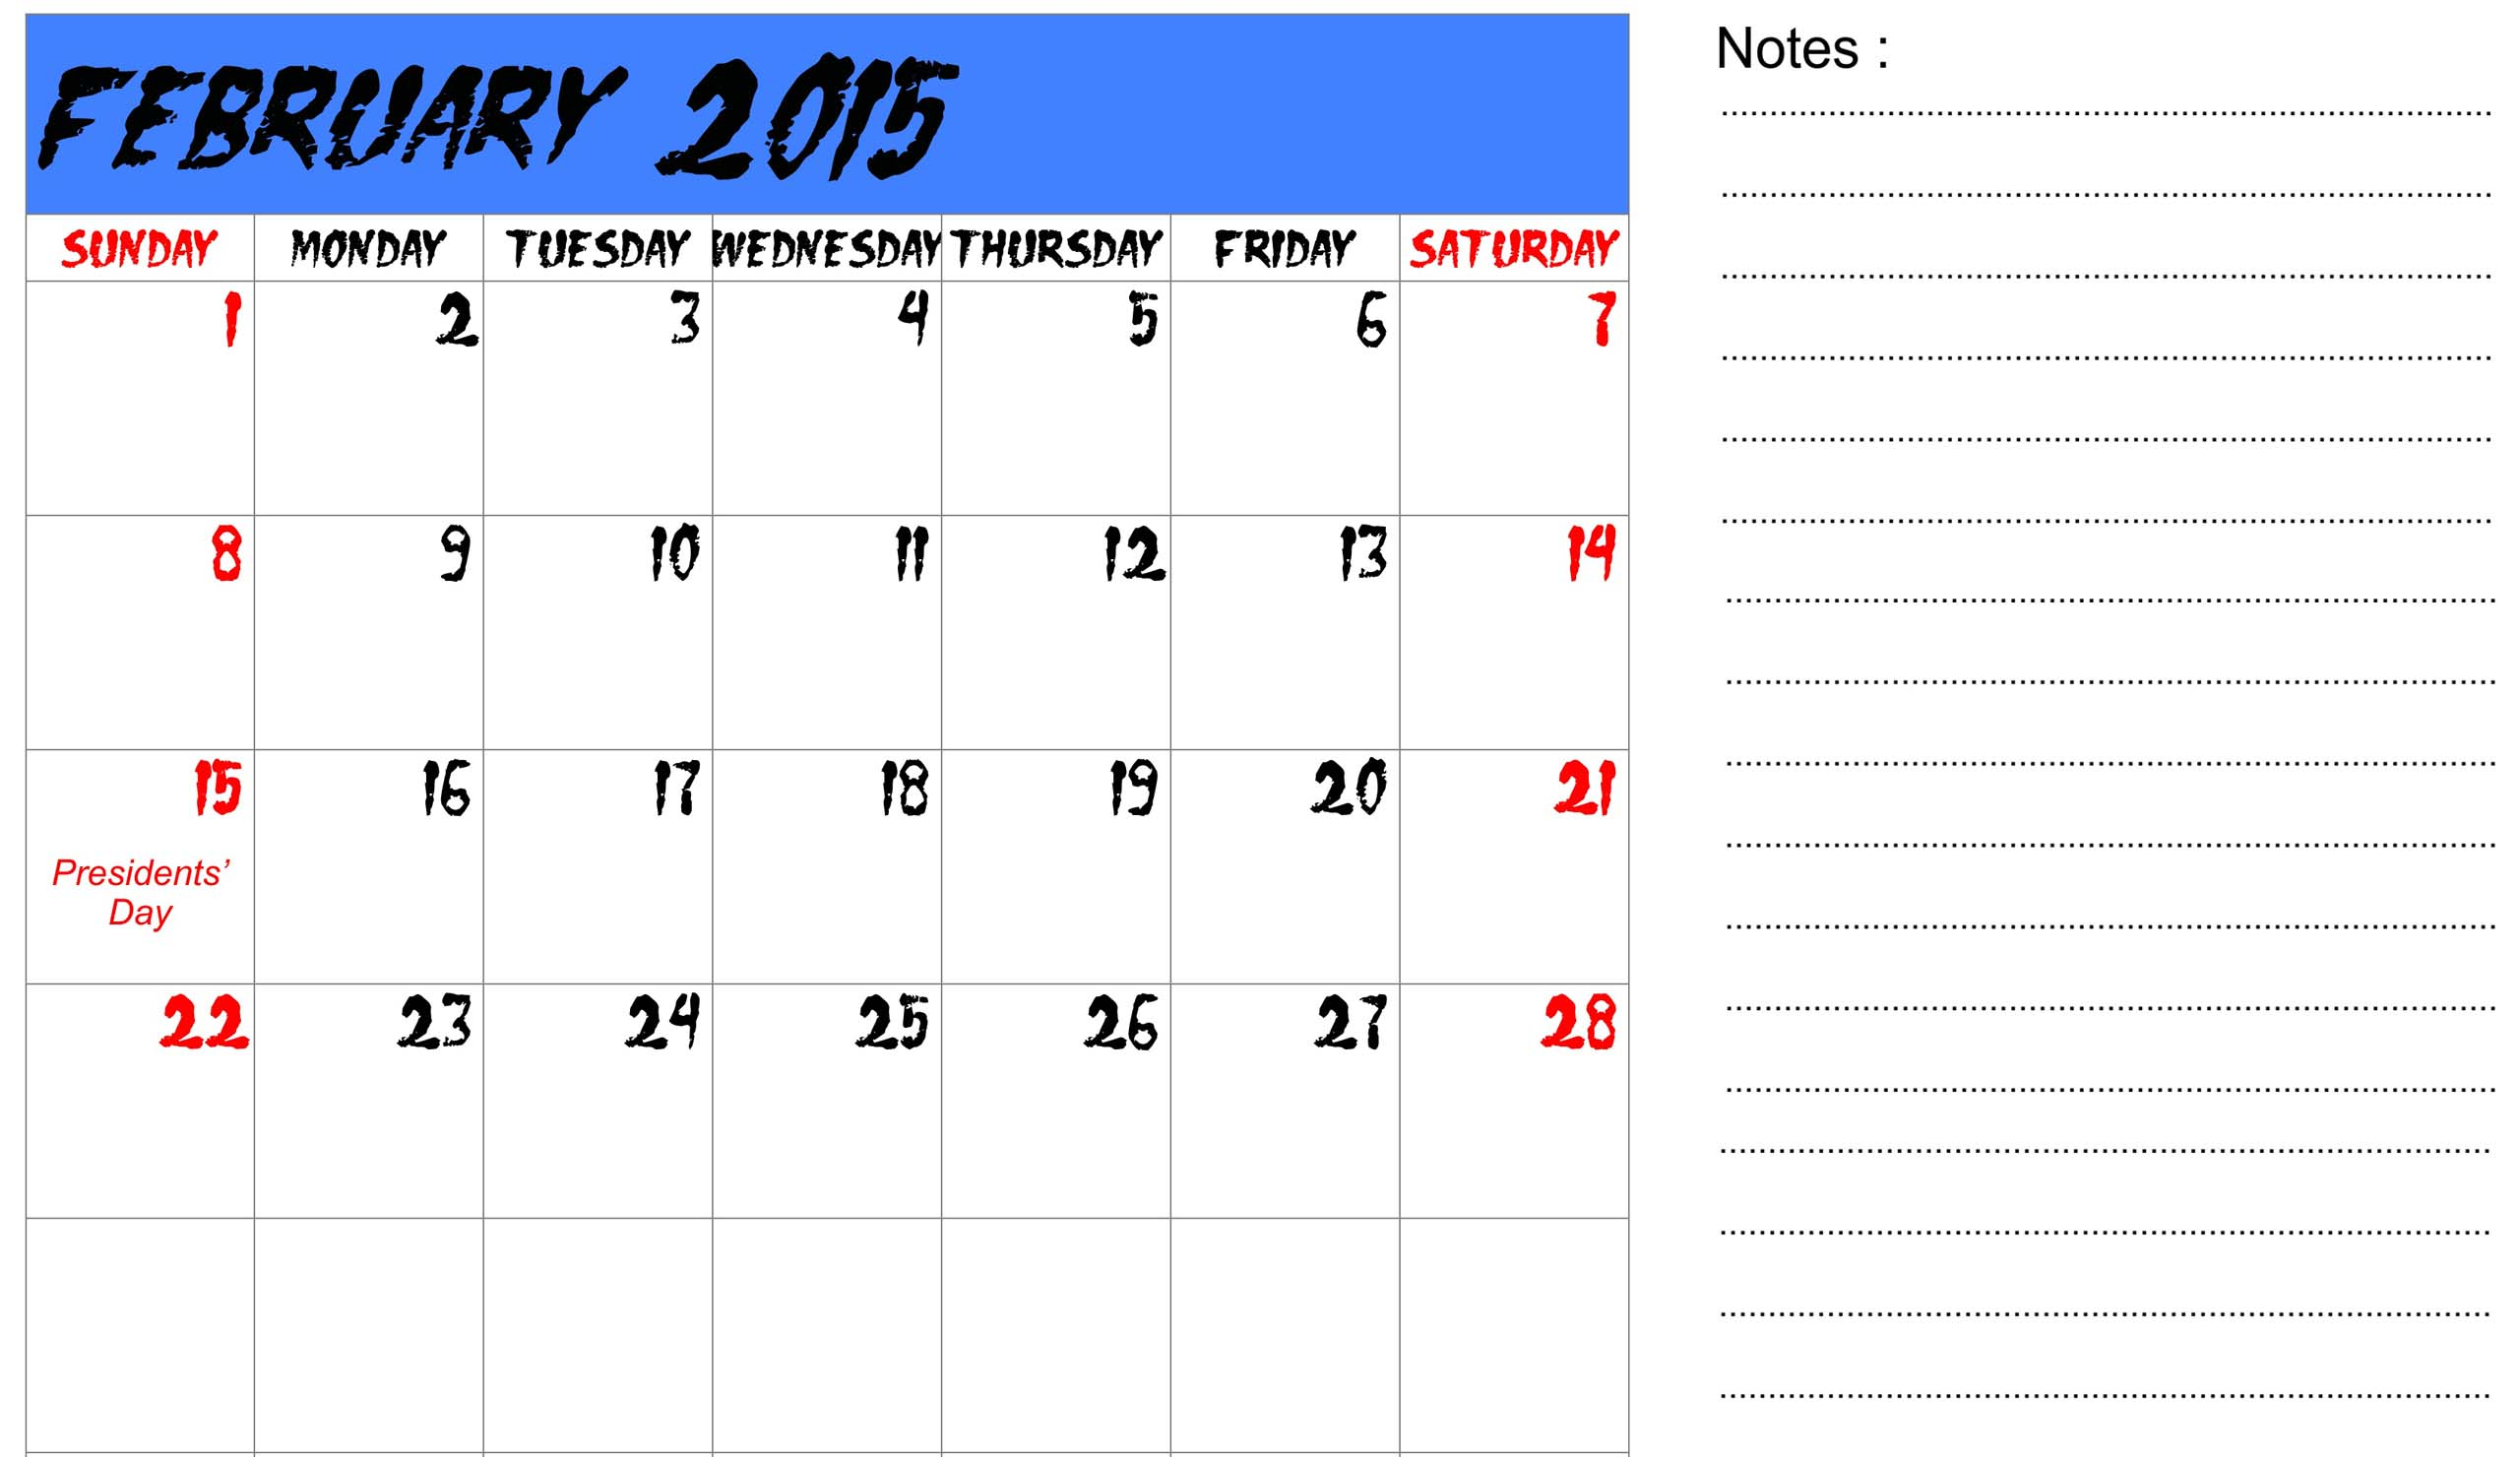 Calendar Wallpaper With Notes : February calendar wallpaper wallpapersafari